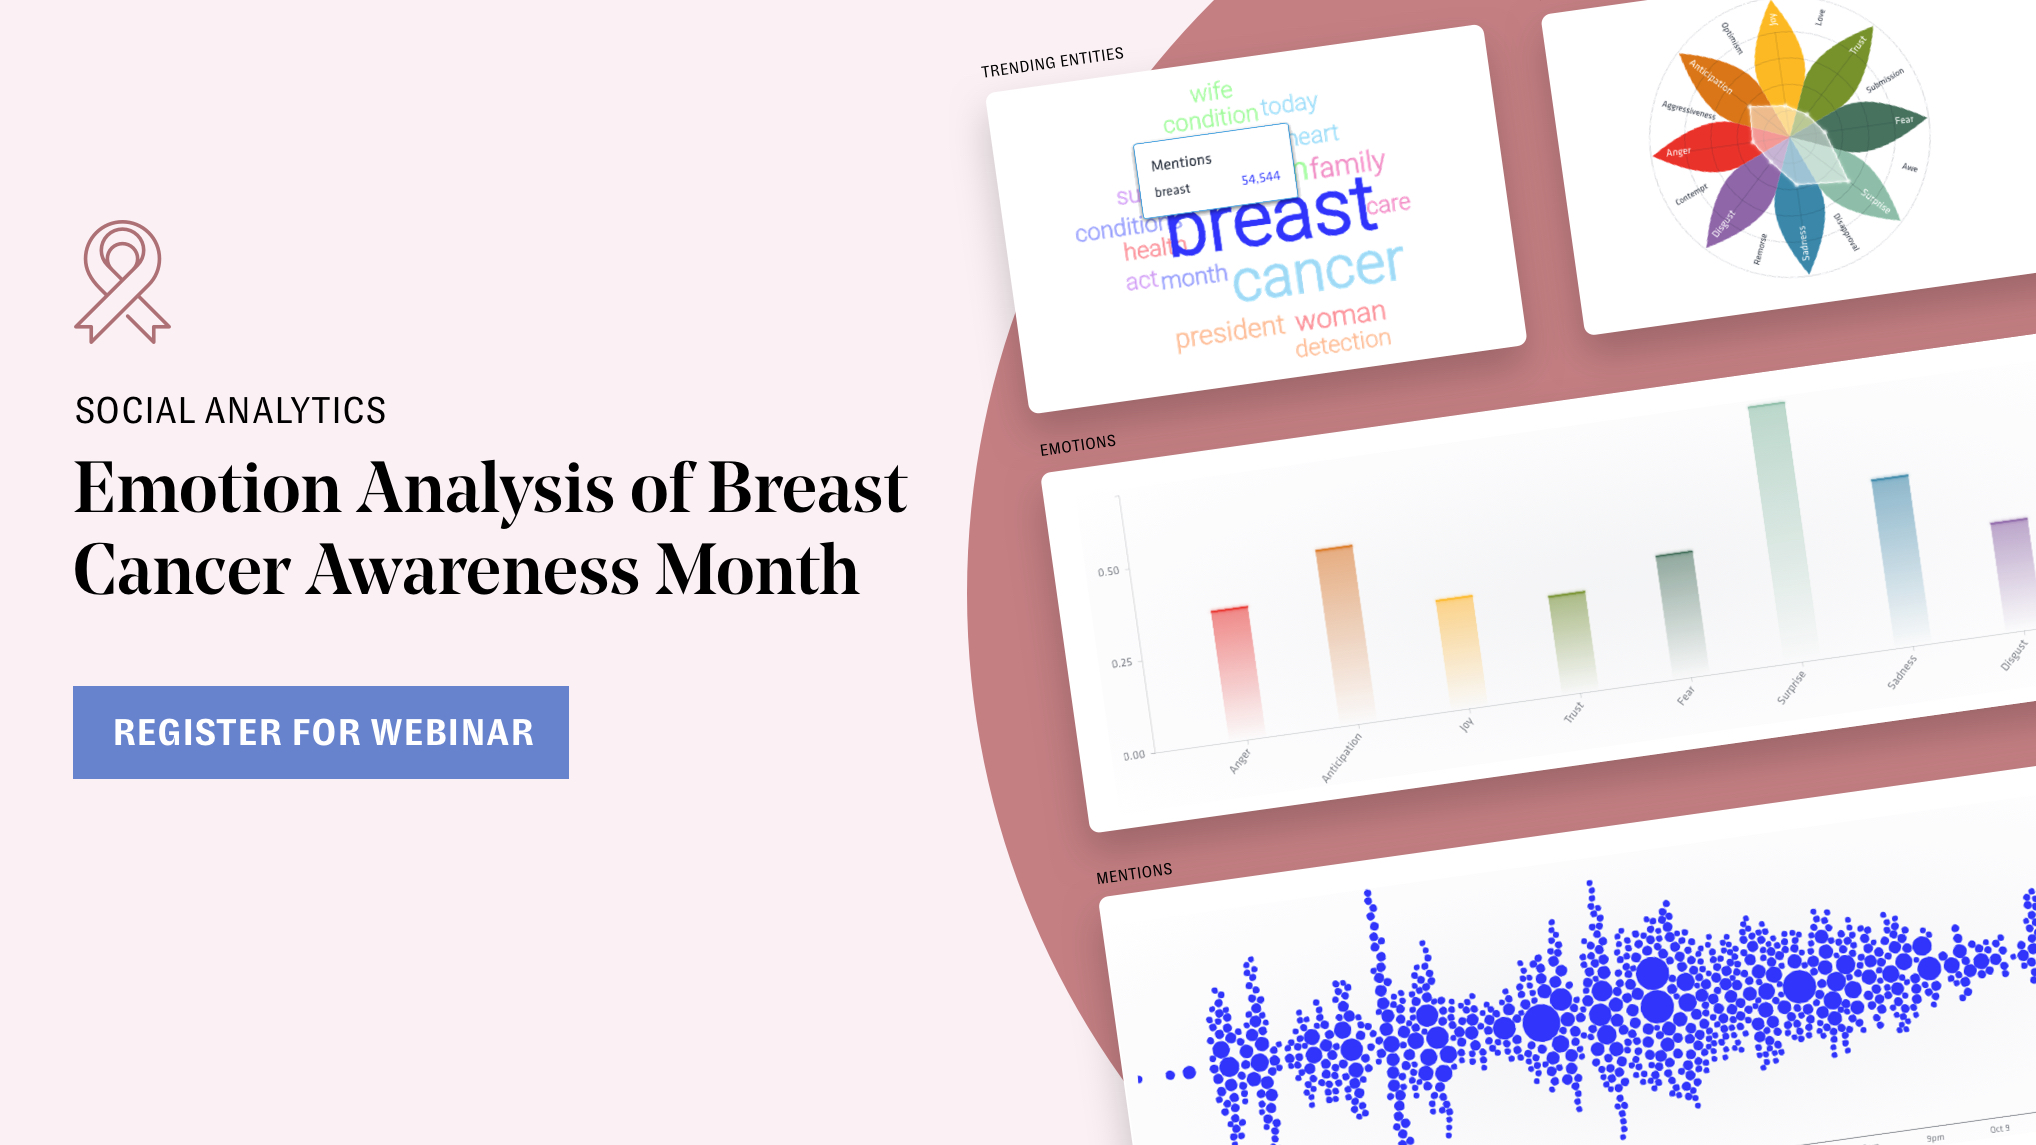 Social Analytics: Emotion Analysis of Breast Cancer Awareness Month. Several social media analytics dashboards show key analytic metrics used in the analysis: emotion analytics, mentions, and trending phrases.